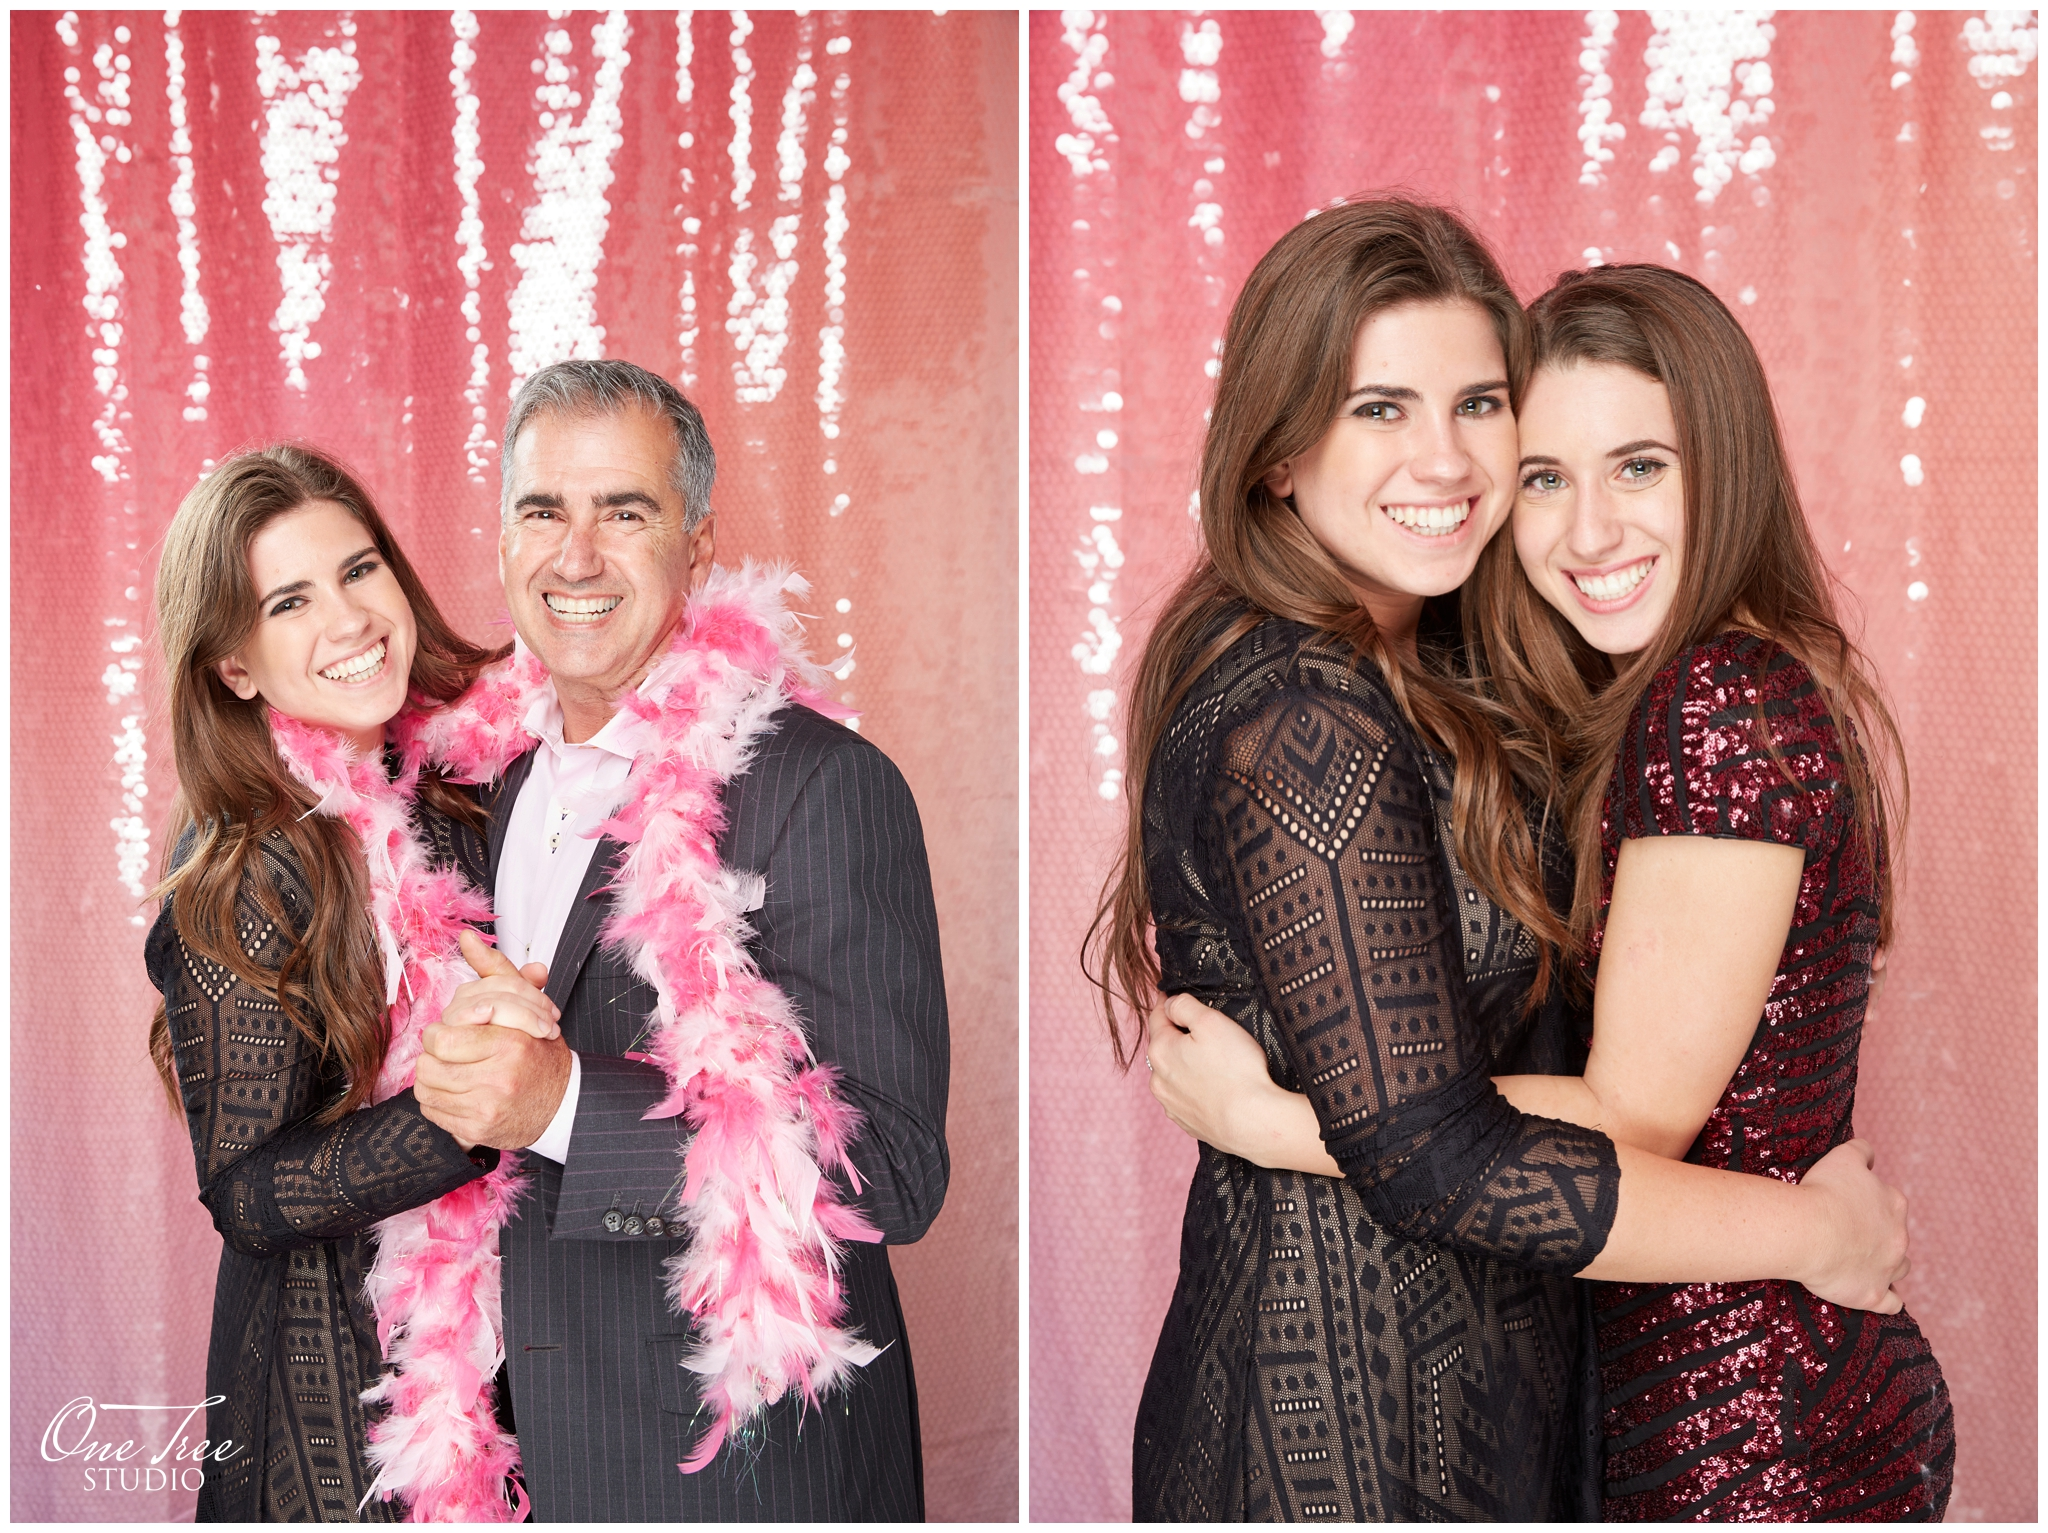 Pink Ombré Sequin Backdrop  (Taken with the Pro Studio Booth)